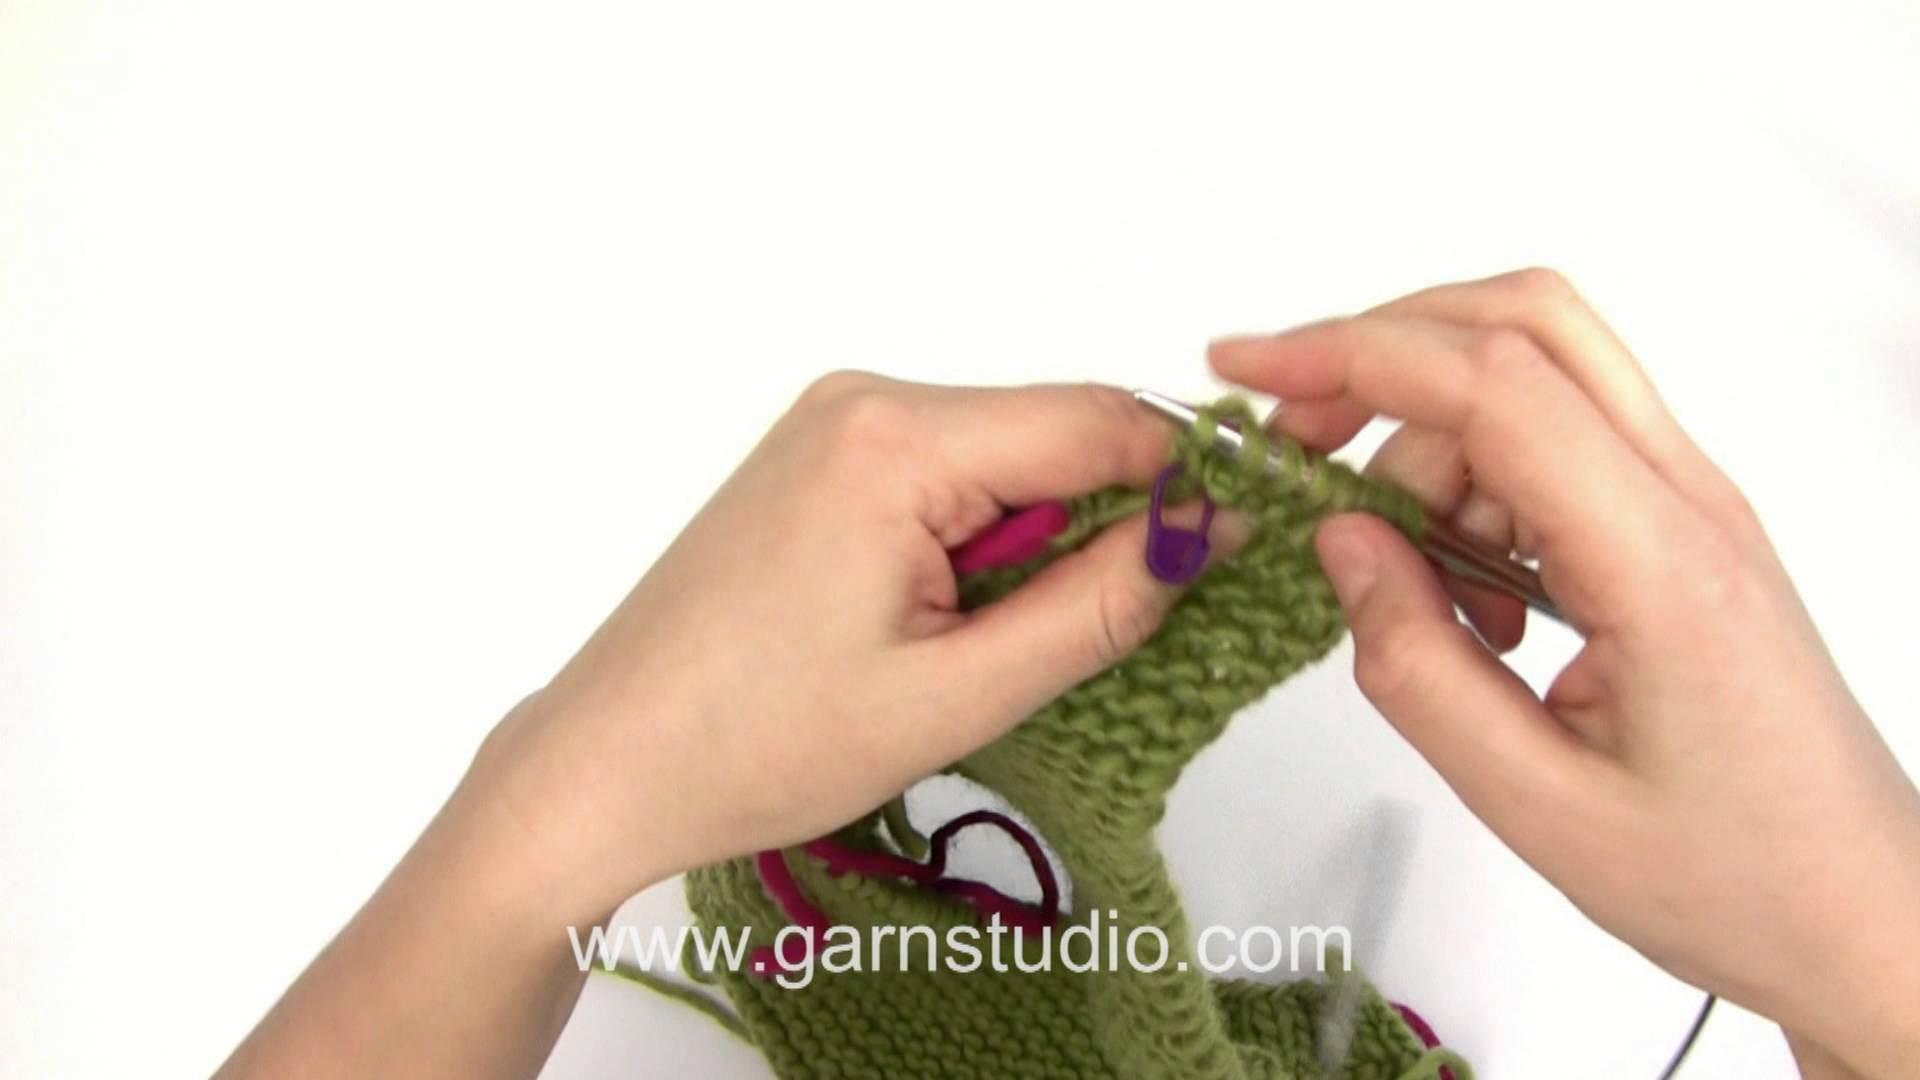 DROPS Knitting Tutorial: How to work heel for the sock in DROPS 160-21